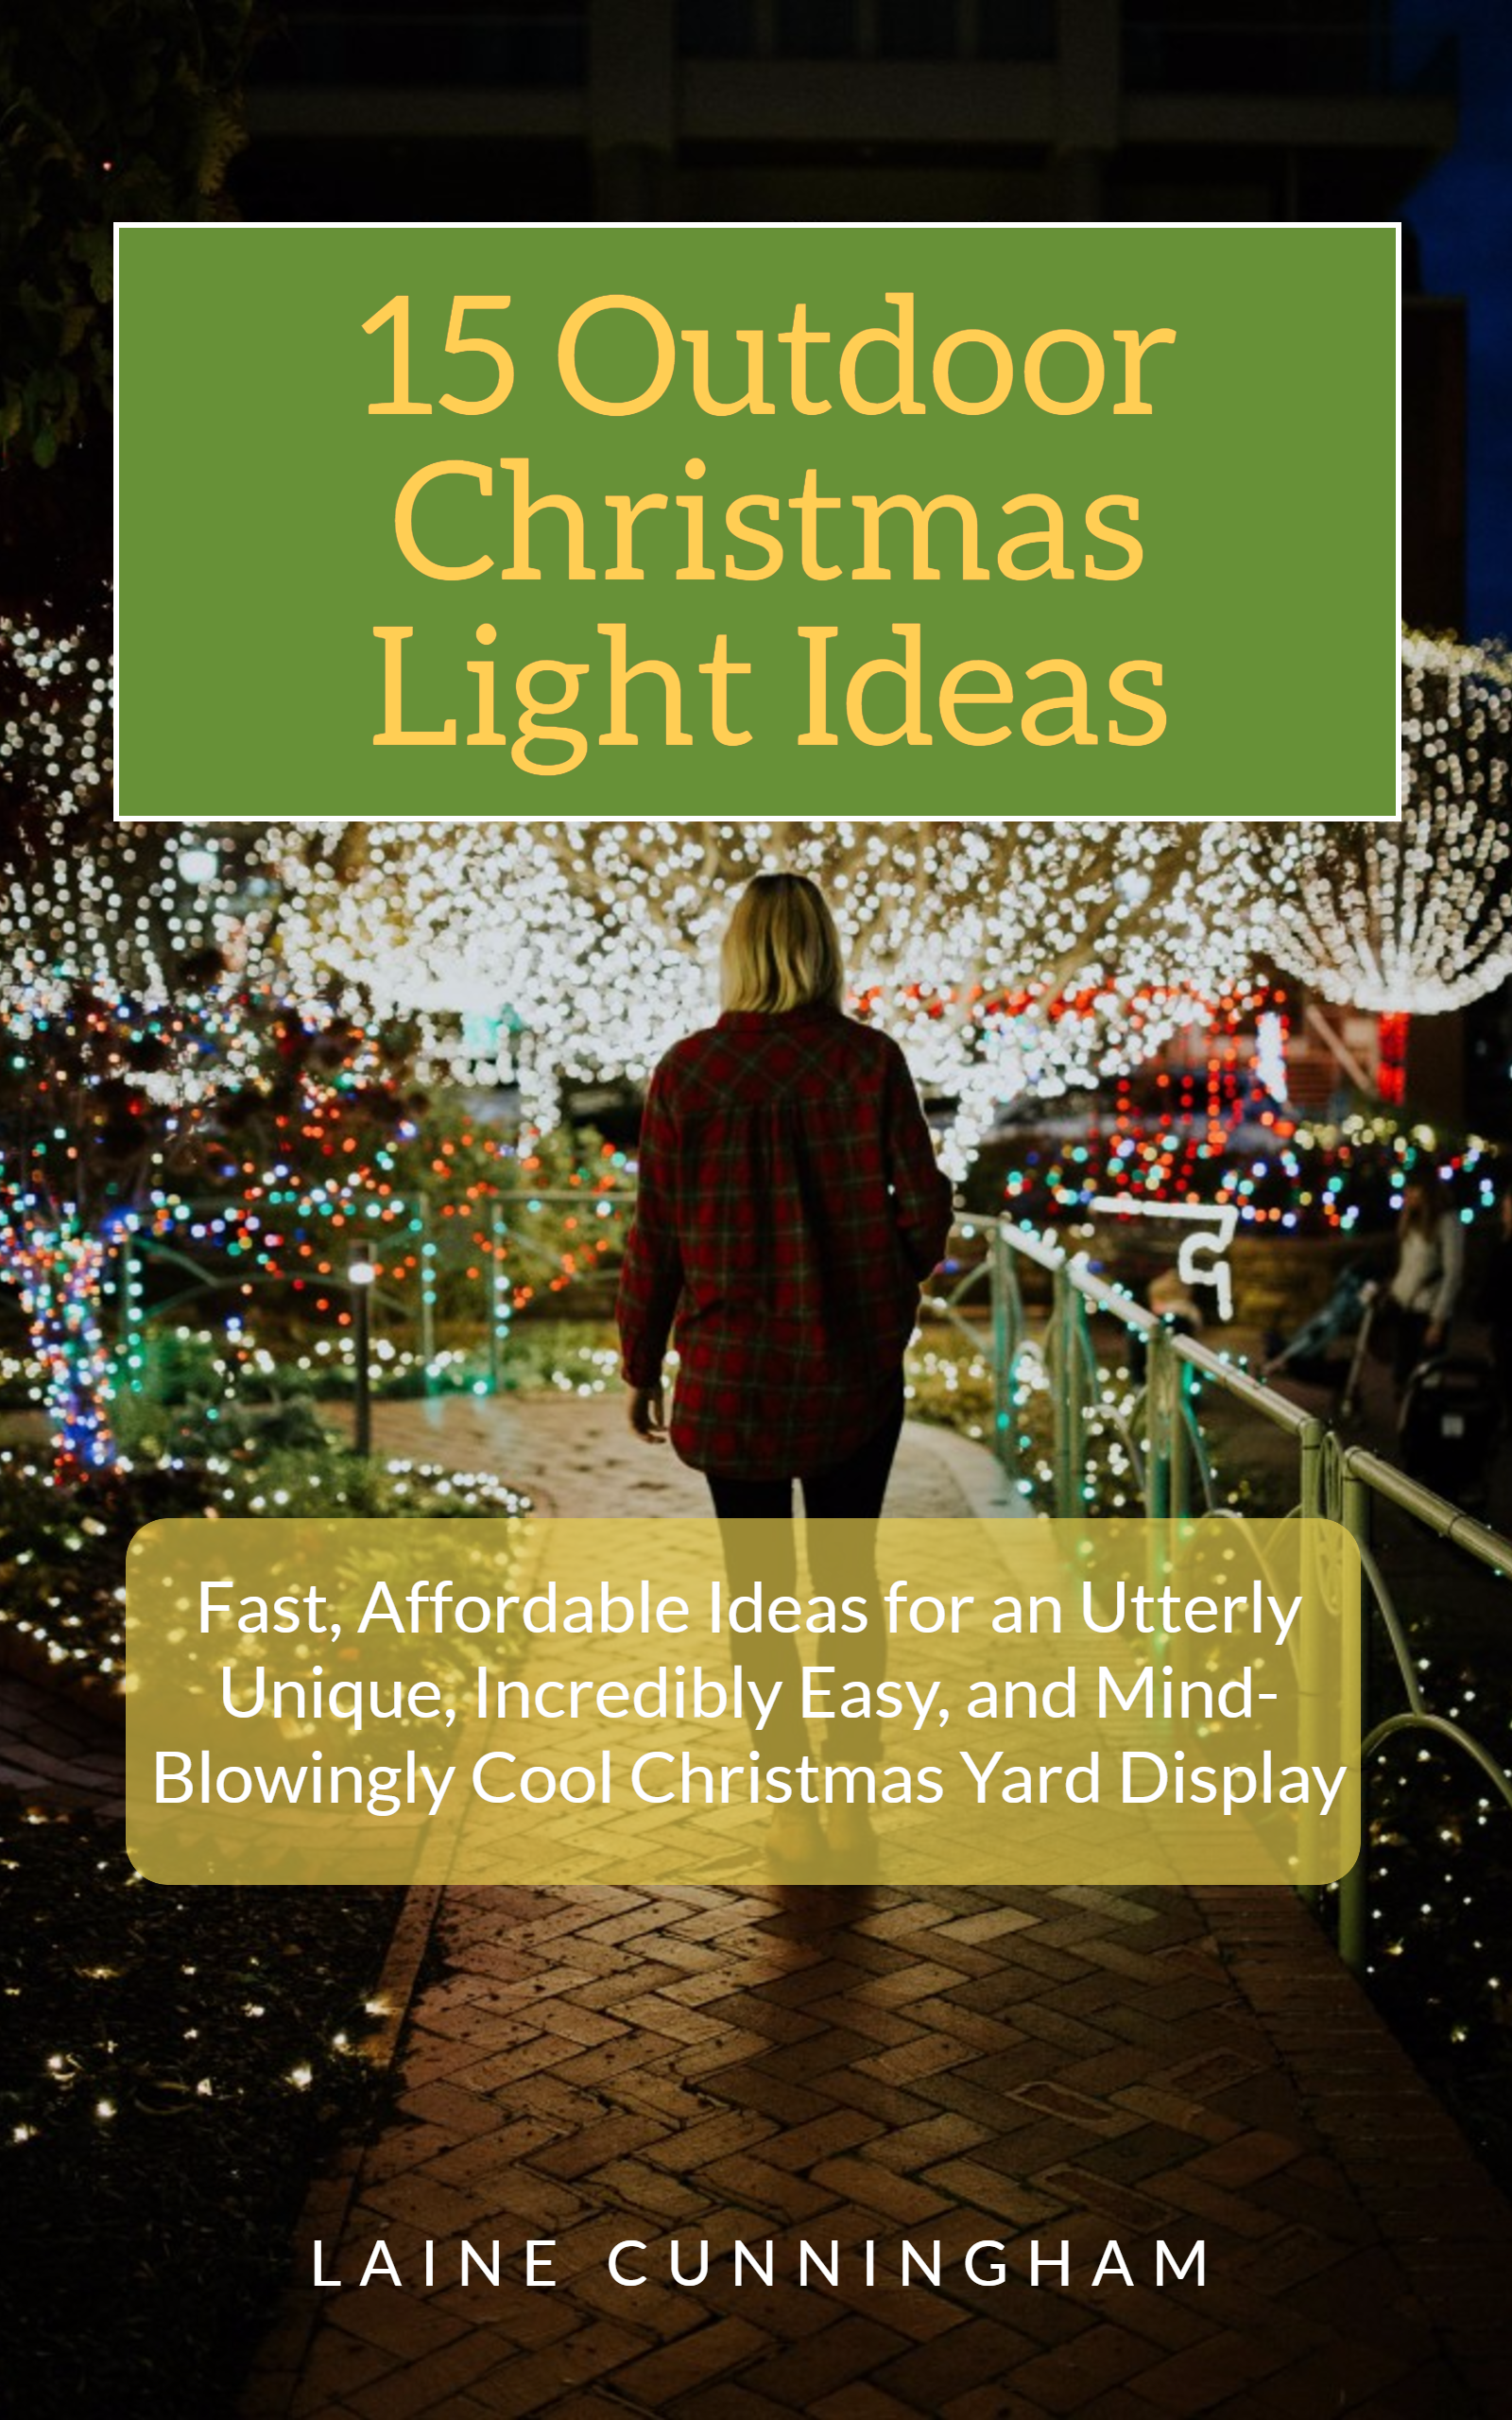 Smashwords 15 Outdoor Christmas Light Ideas Fast Affordable Ideas For An Utterly Unique Incredibly Easy And Mind Blowingly Cool Christmas Yard Display A Book By Laine Cunningham